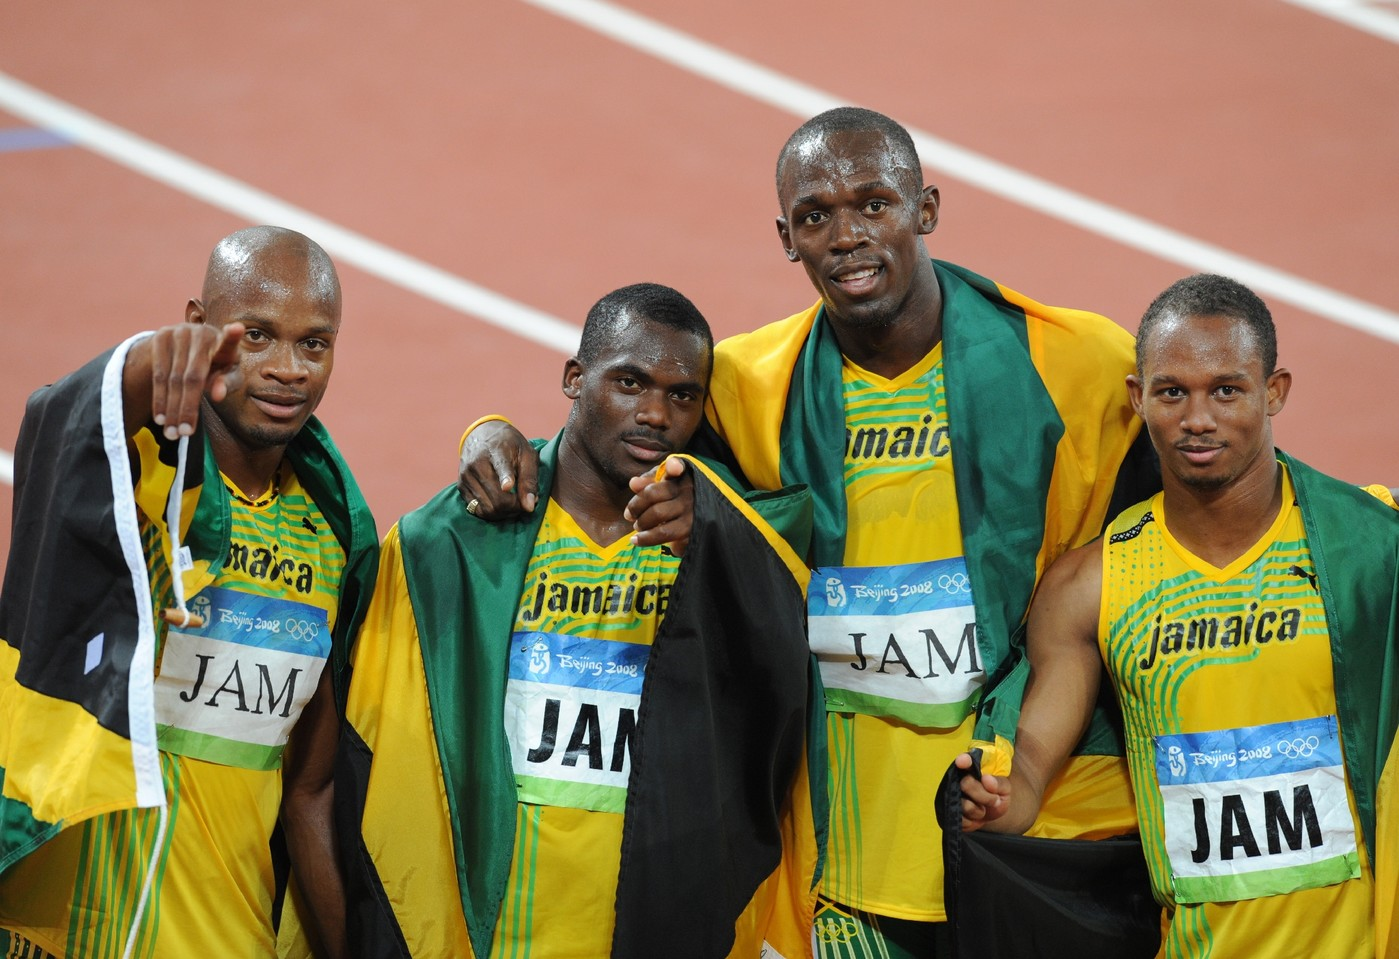 Bolt, Jamaica Teammates Lose Beijing 2008 Medals For Banned Drugs